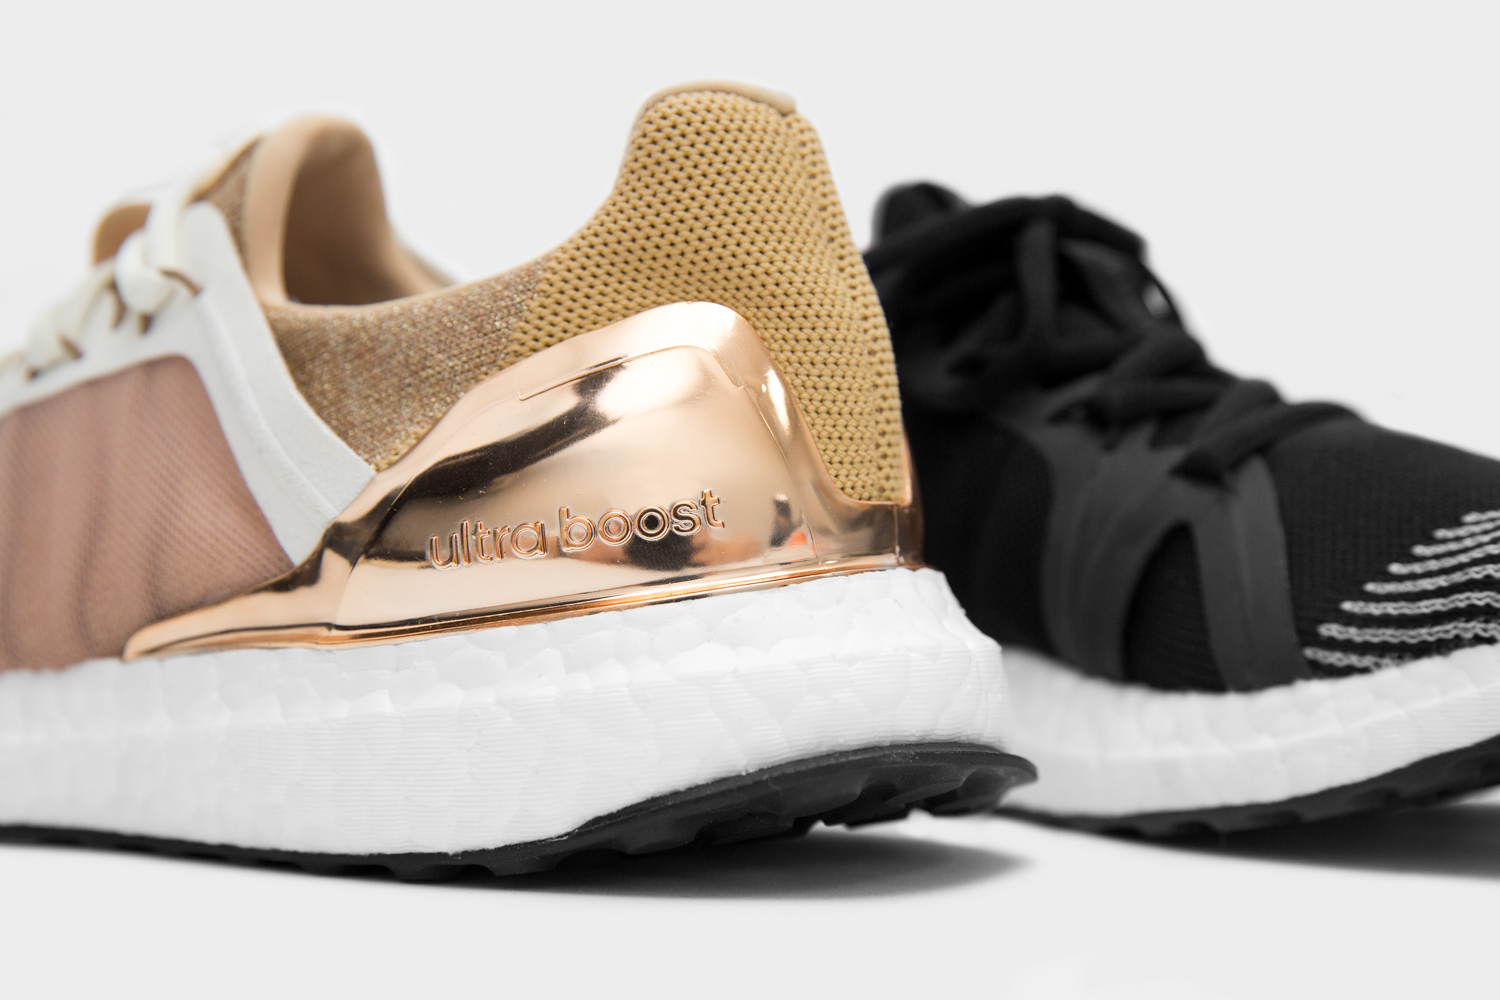 Adidas Ultra Boost Stella Mccartney softwaretutor.co.uk 11c6cab811d19